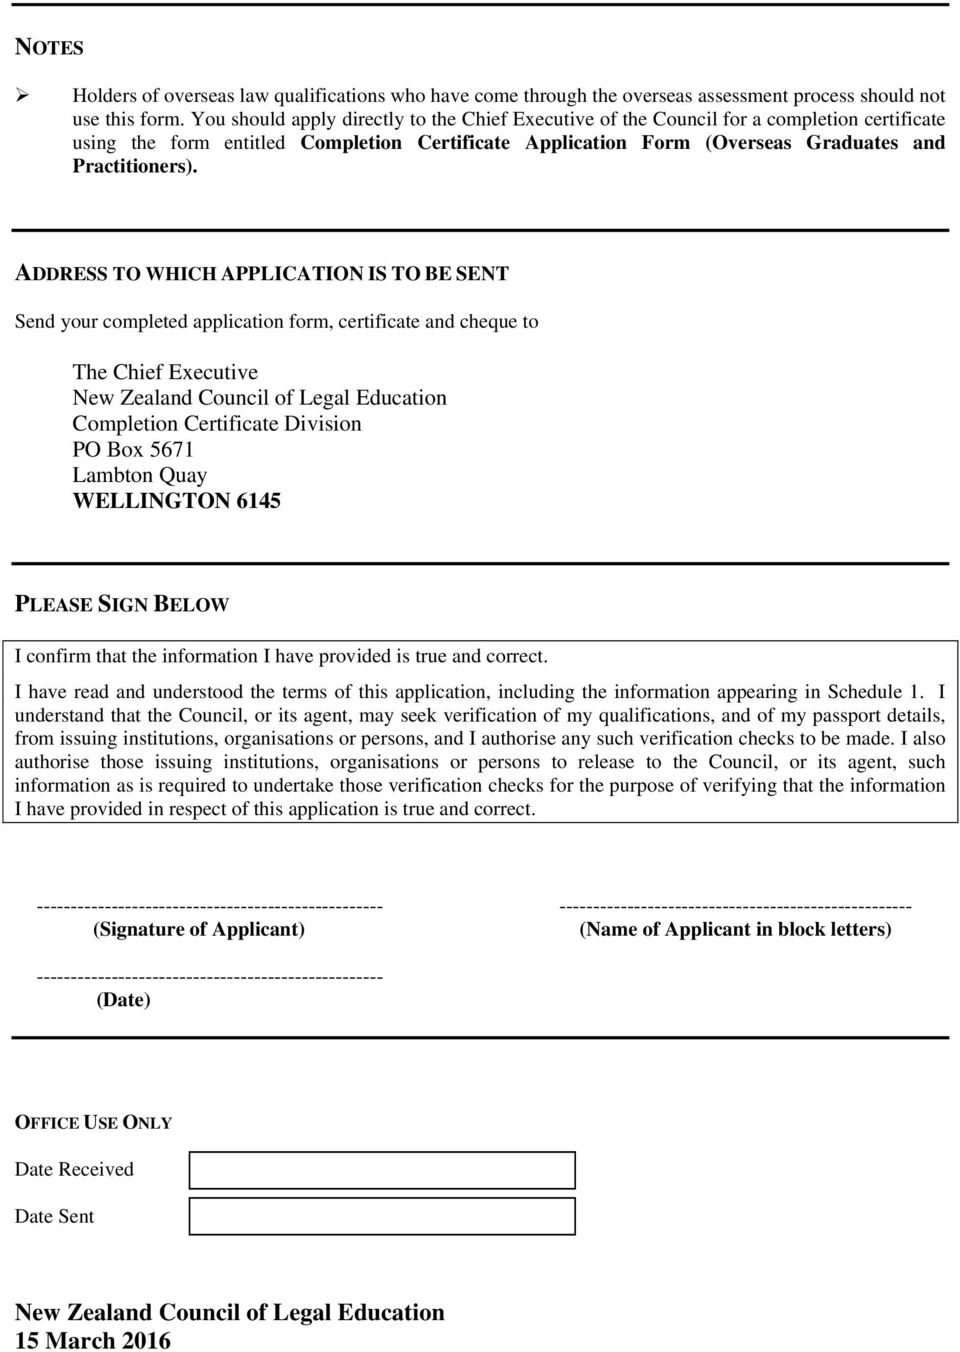 ADDRESS TO WHICH APPLICATION IS TO BE SENT Send your completed application form, certificate and cheque to The Chief Executive New Zealand Council of Legal Education Completion Certificate Division